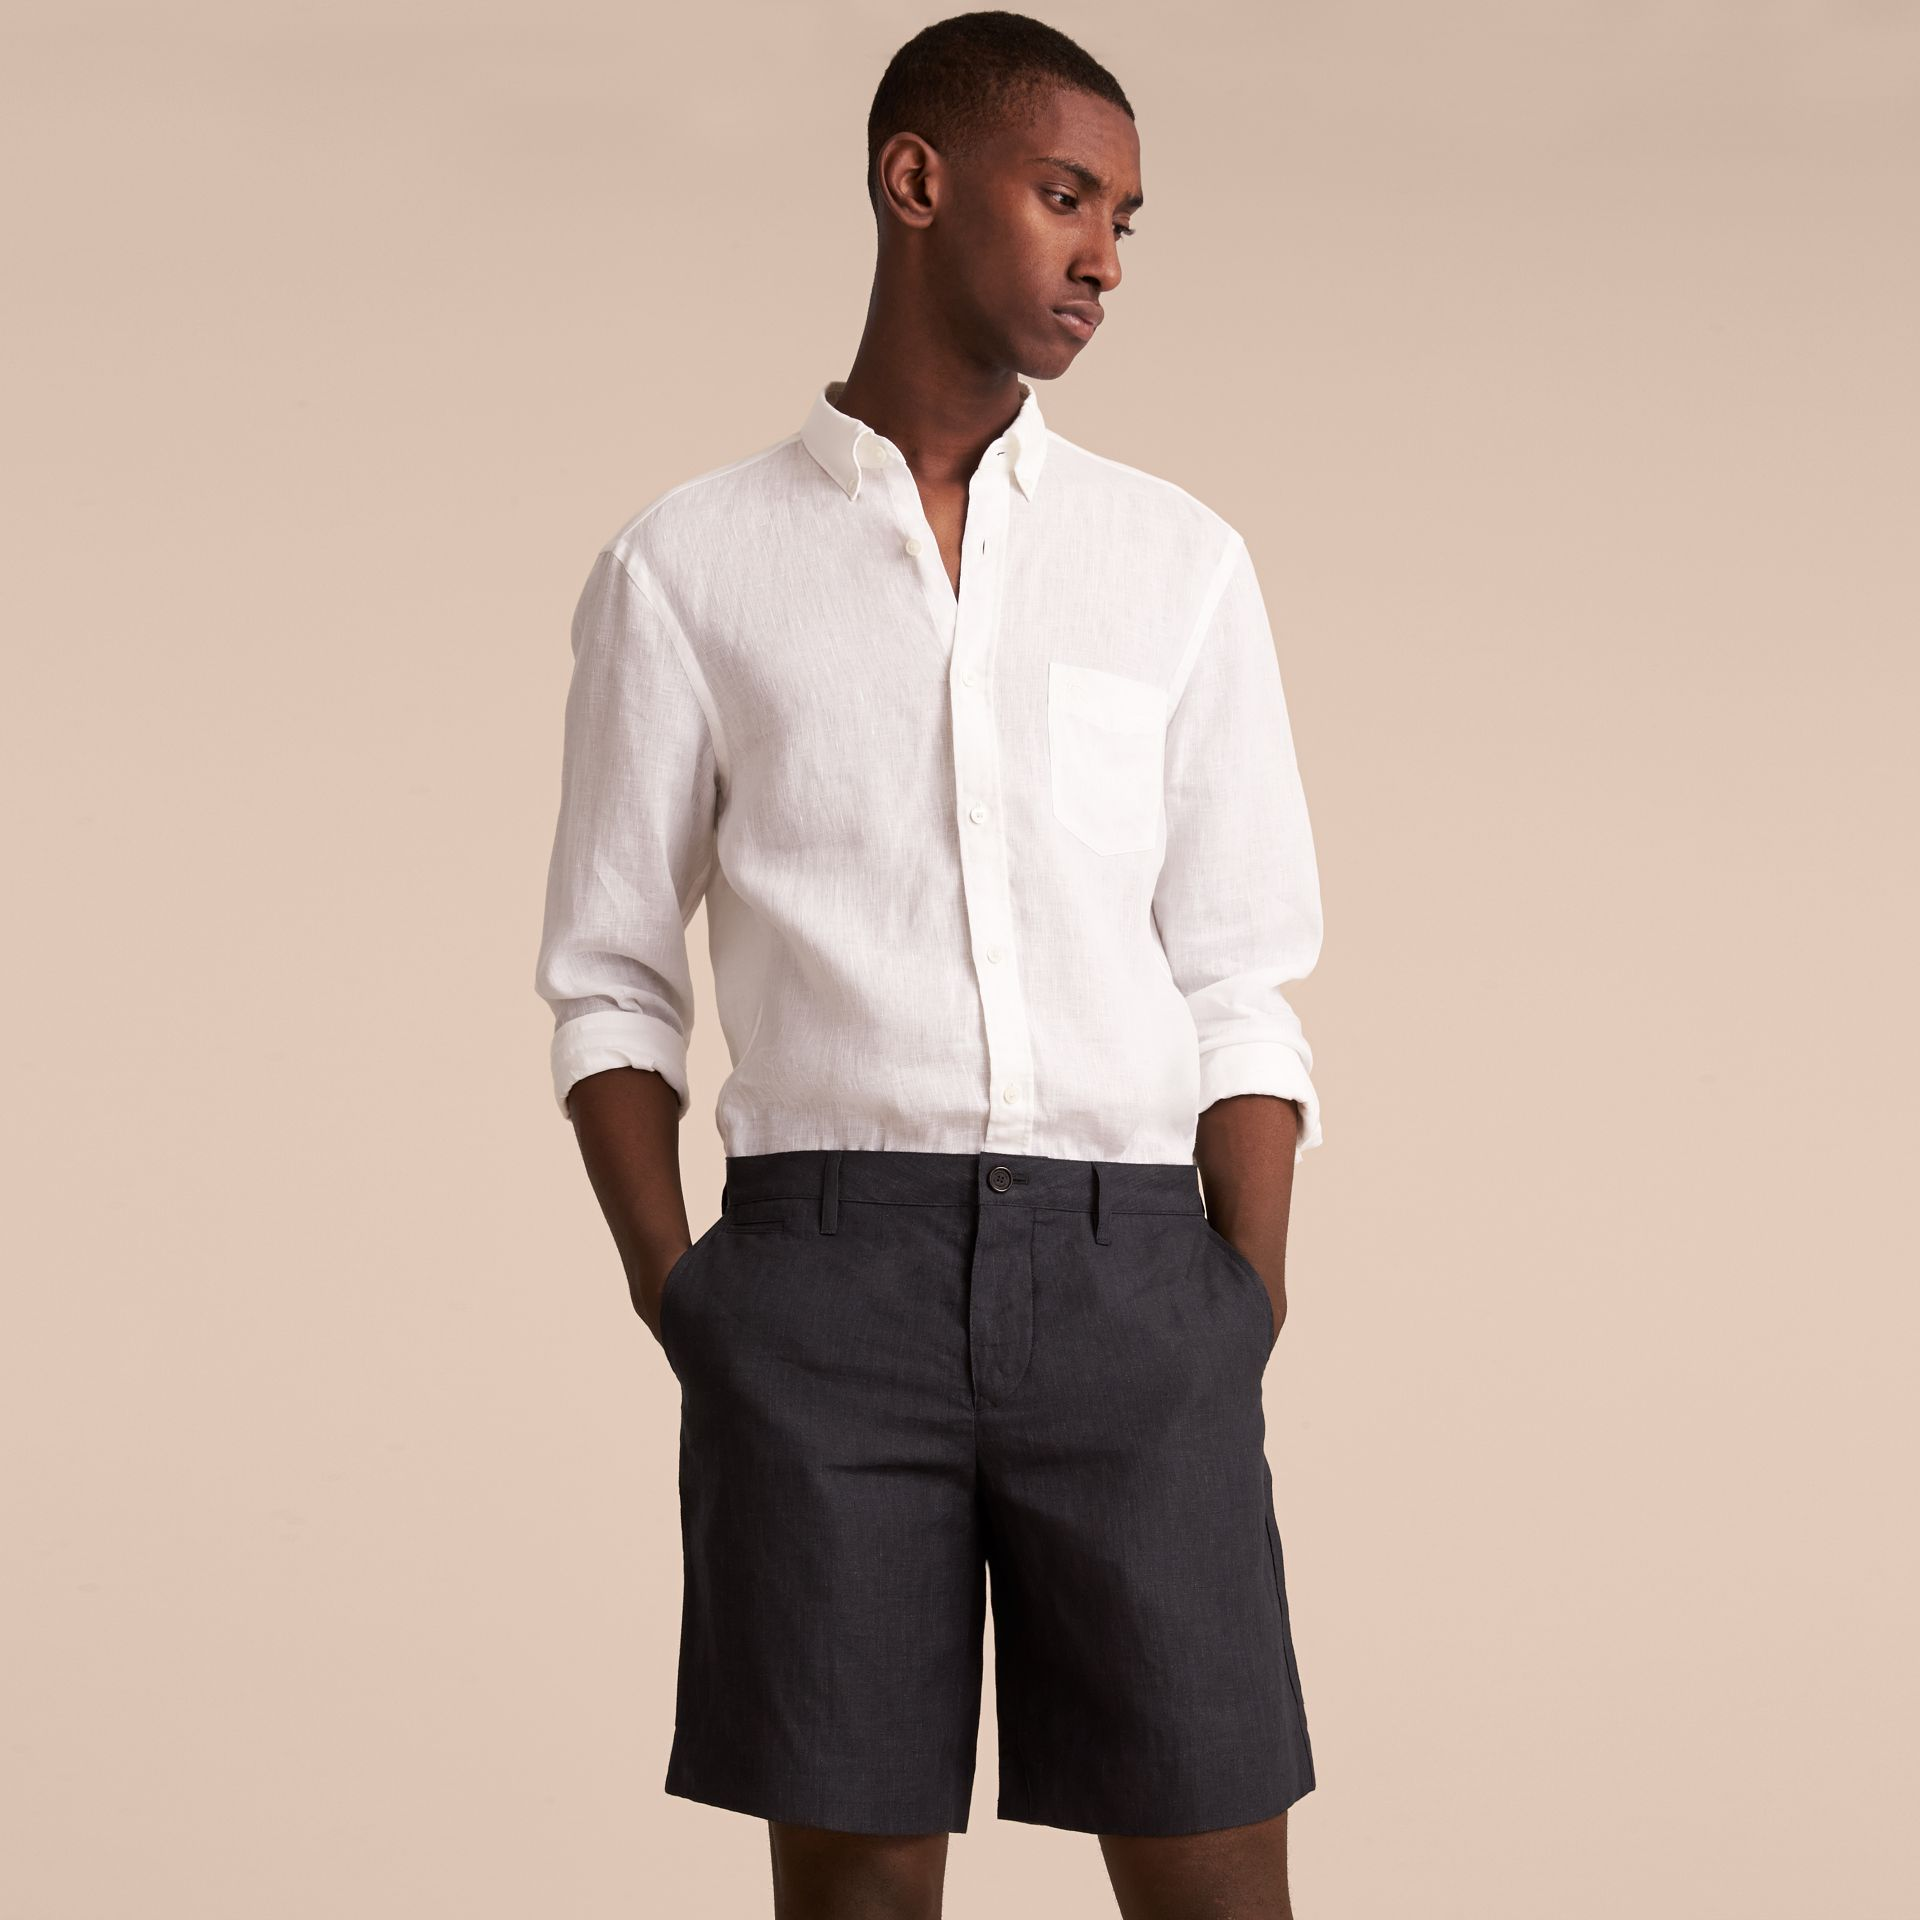 Lightweight Linen Shorts in Charcoal - Men | Burberry - gallery image 6